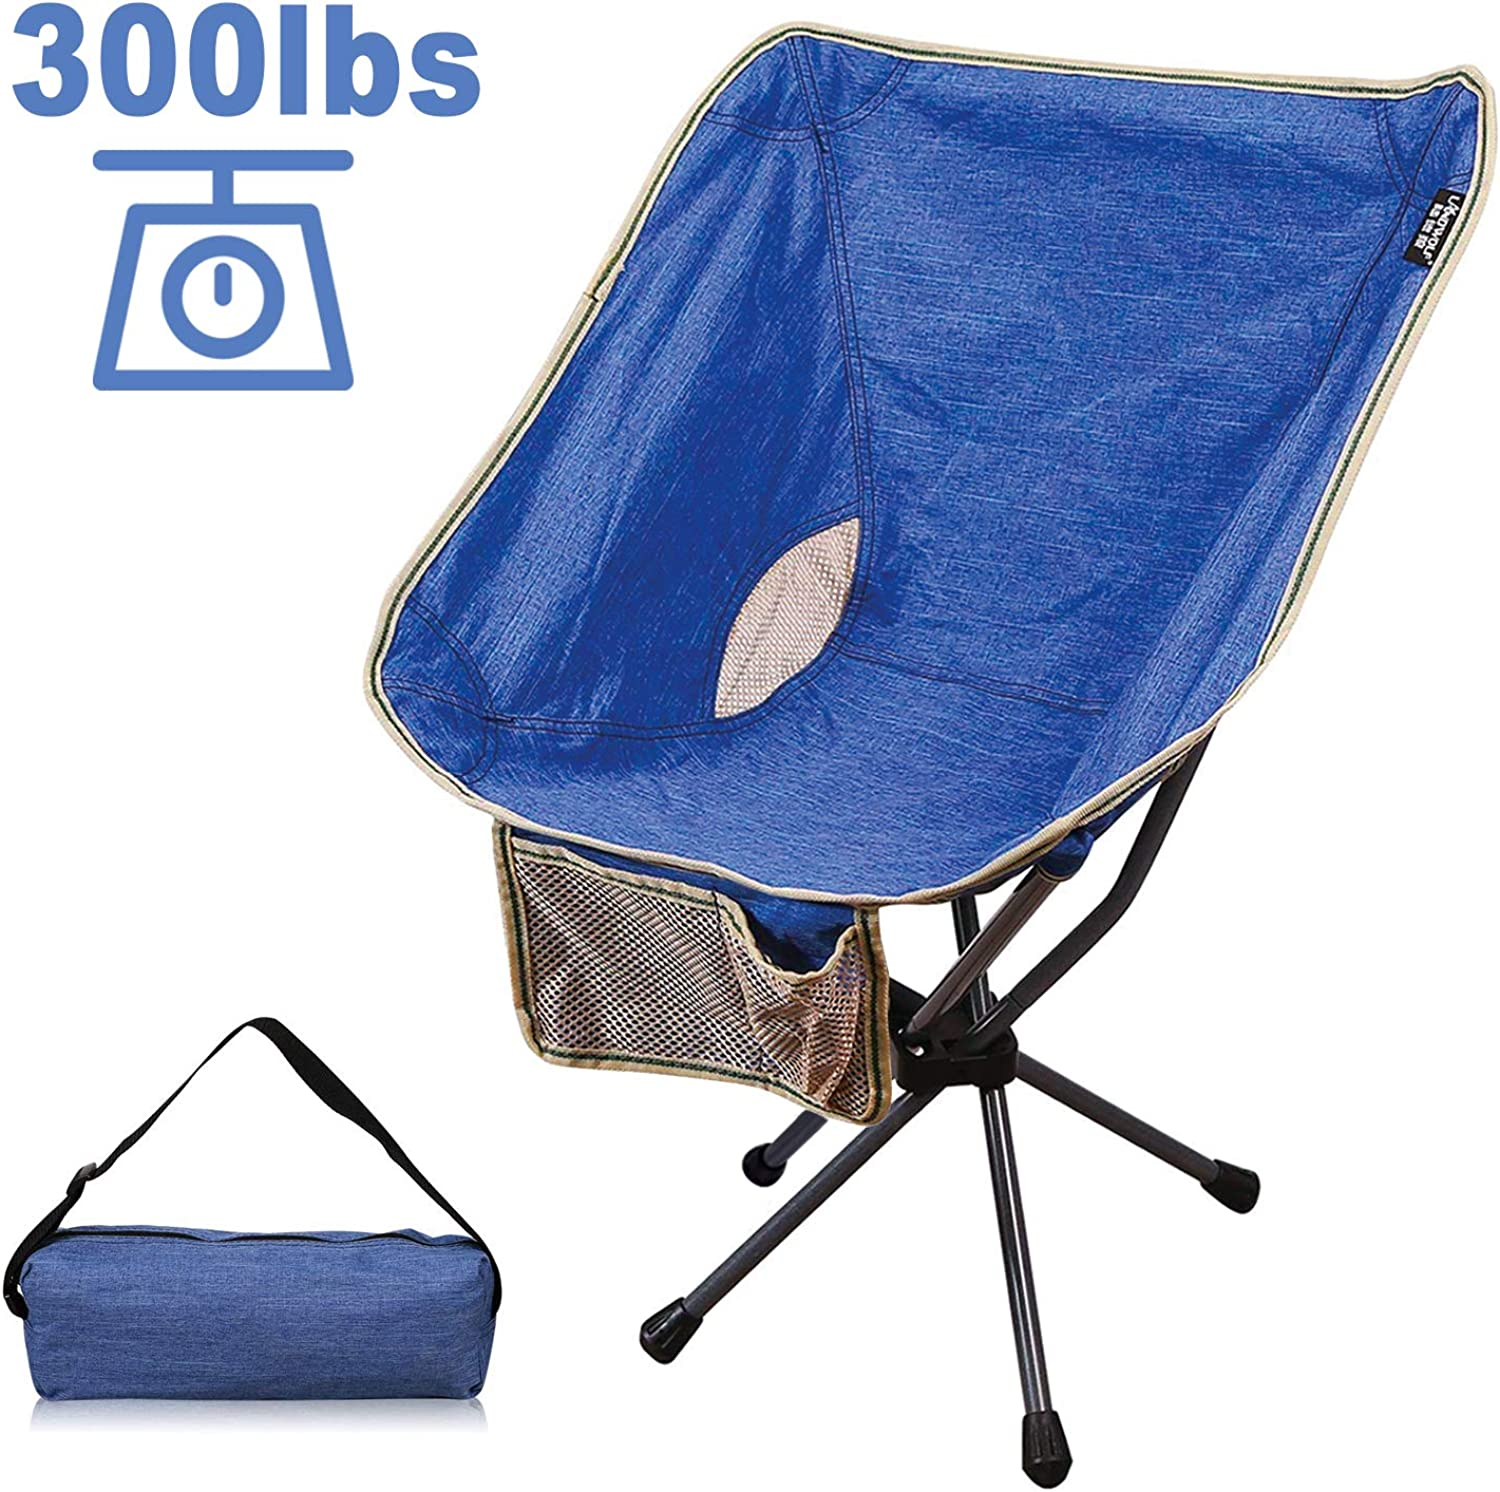 Mini Folding Chair Camping Furniture Beach Fishing Easy Carry Pocket Outdoor